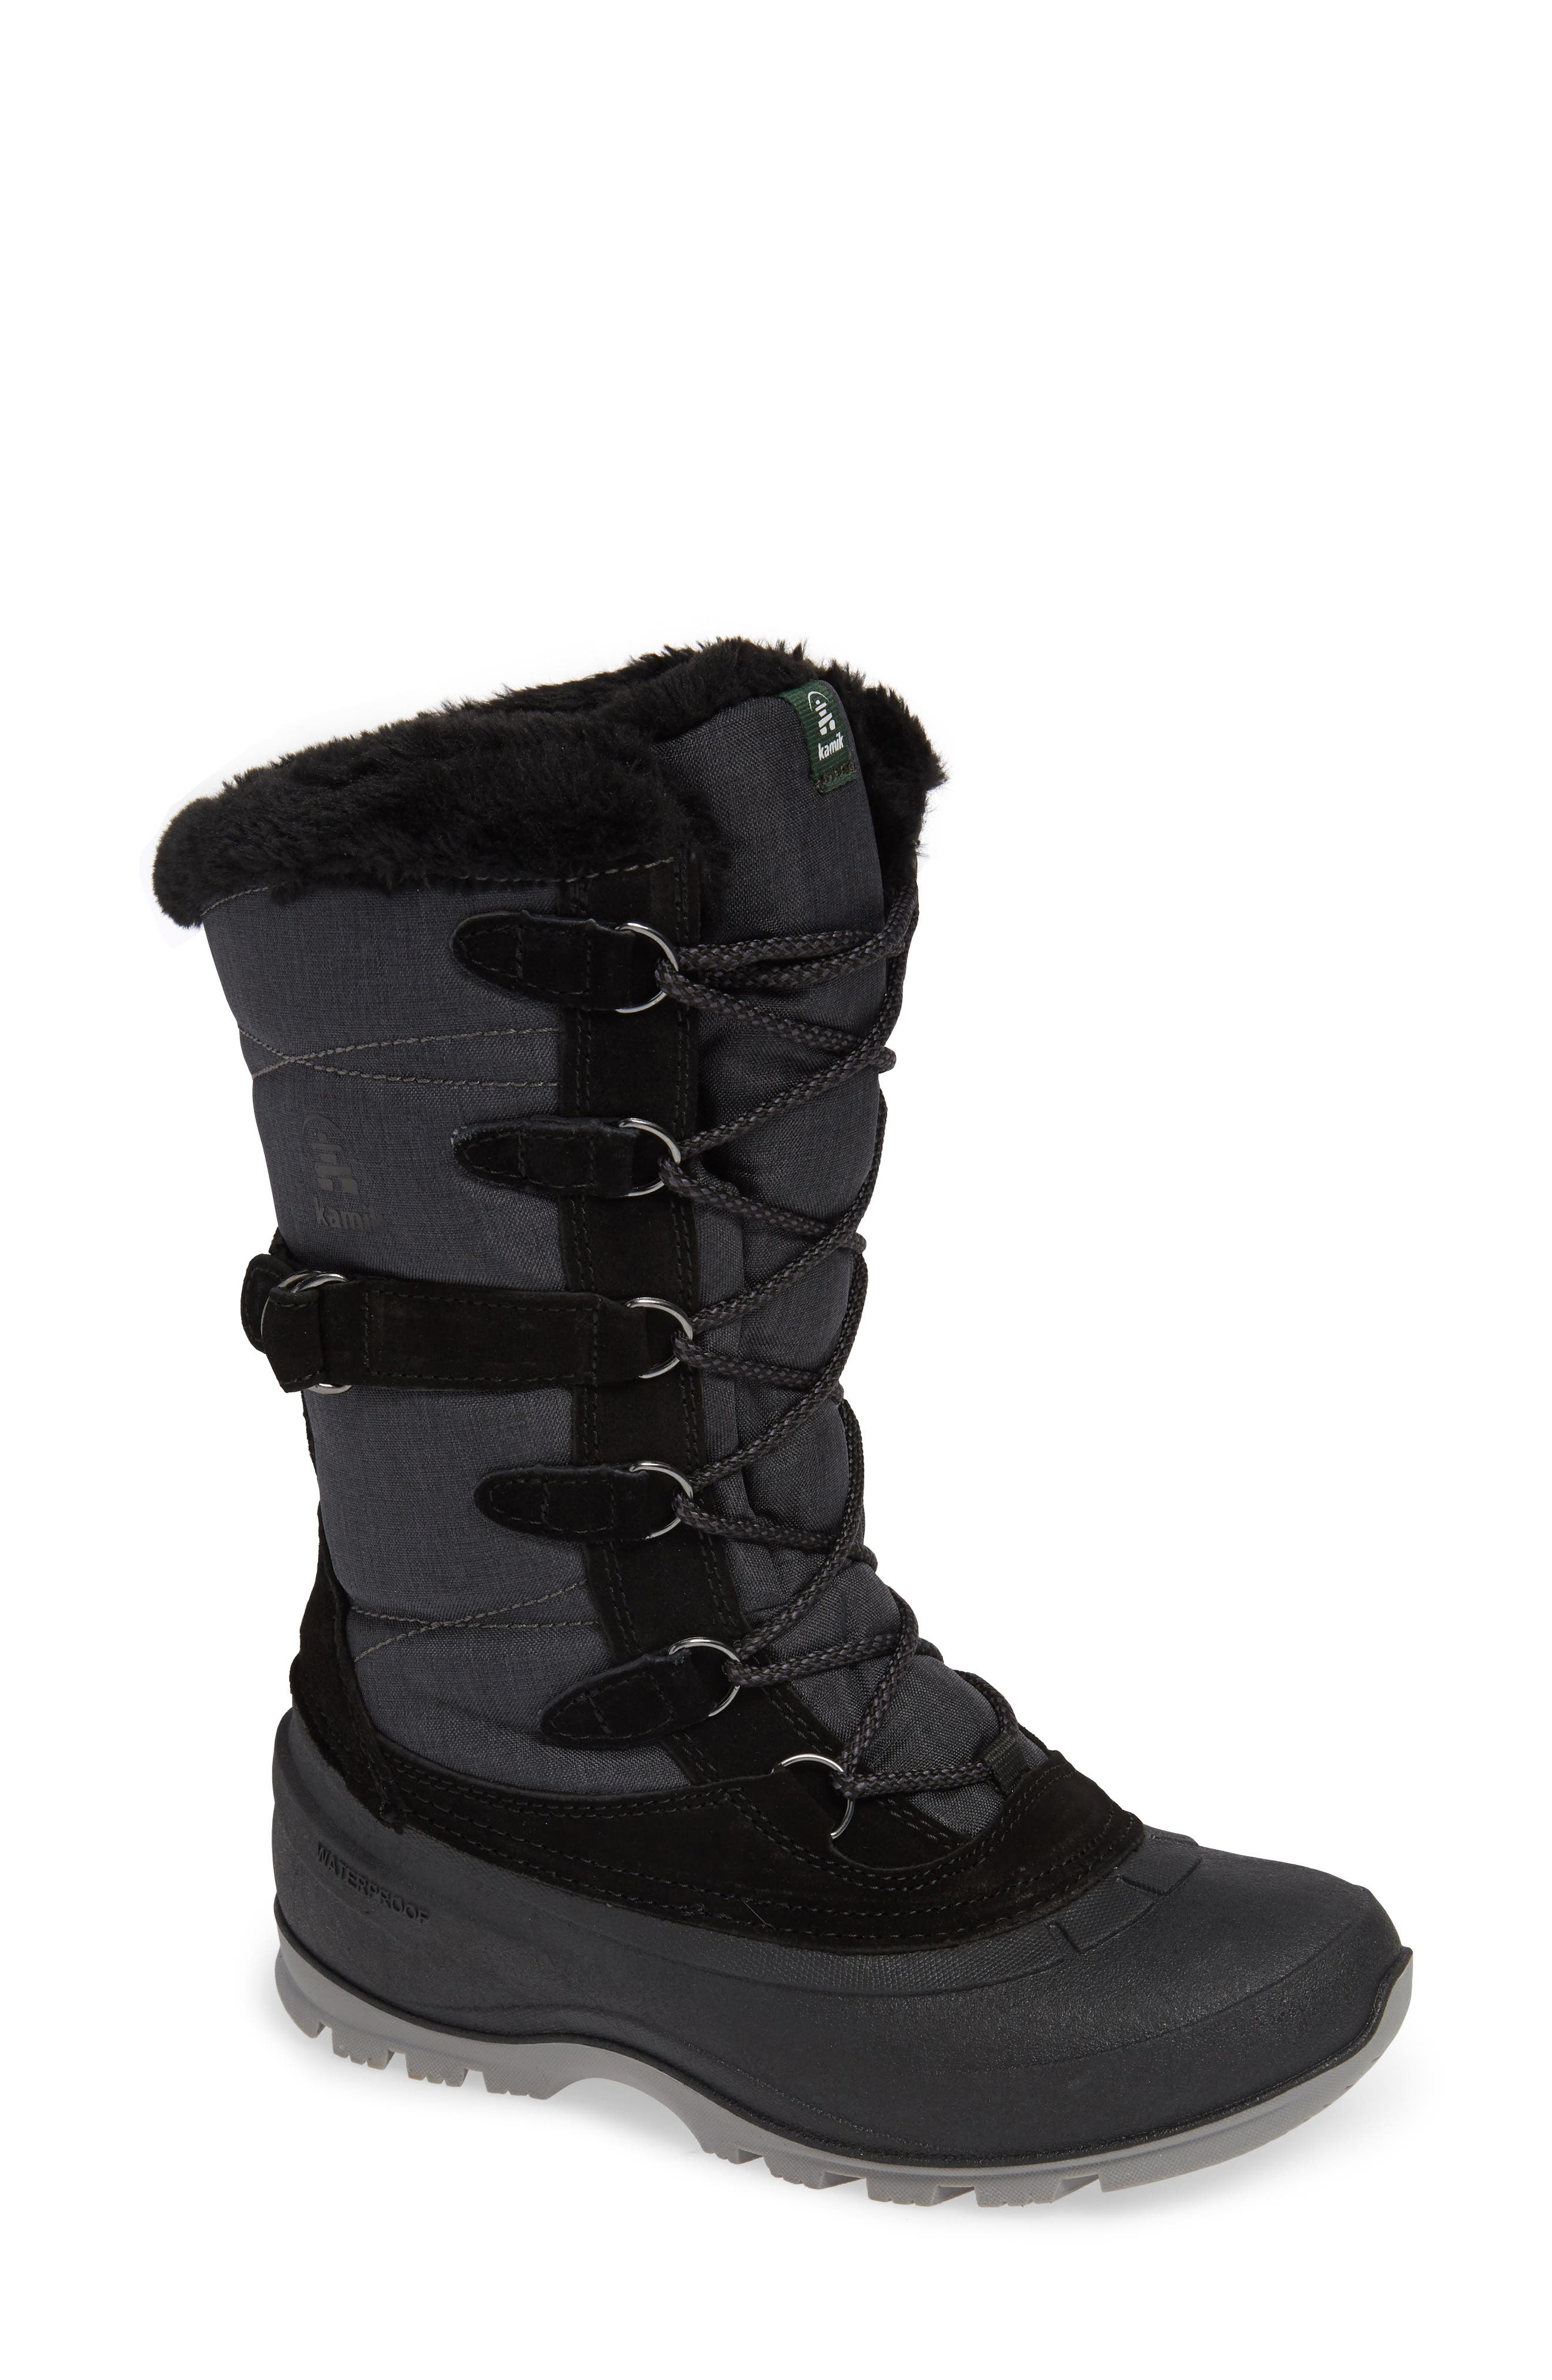 Snovalley2 Waterproof Thinsulate<sup>®</sup>-Insulated Snow Boot,                             Main thumbnail 1, color,                             BLACK